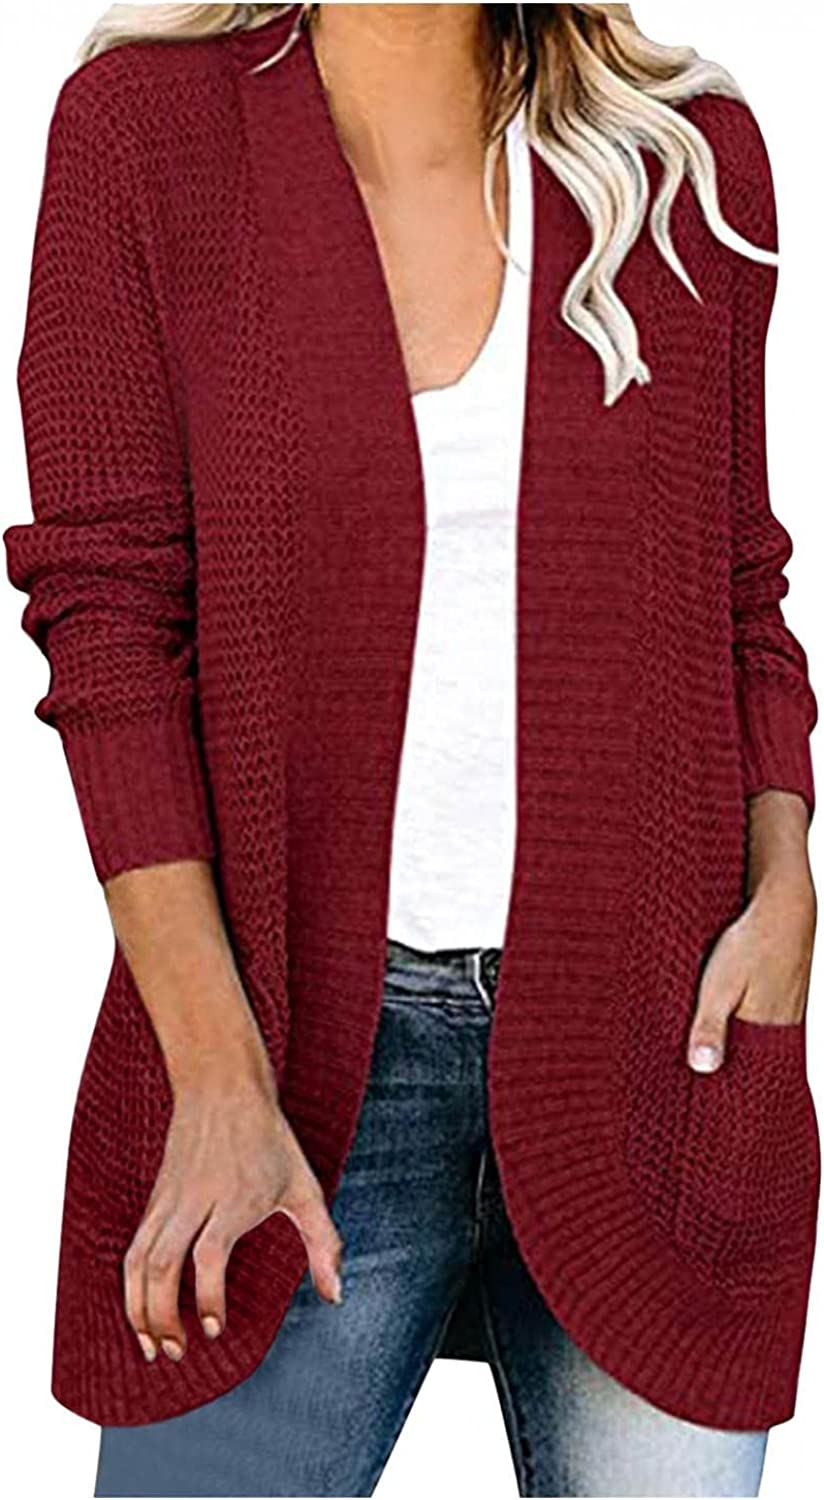 KYLEON Womens Solid Slim Fit Long Waterfall Kimono Cardigan Pockets Long Sleeve Open Front Casual Knit Sweaters Coat Outfit